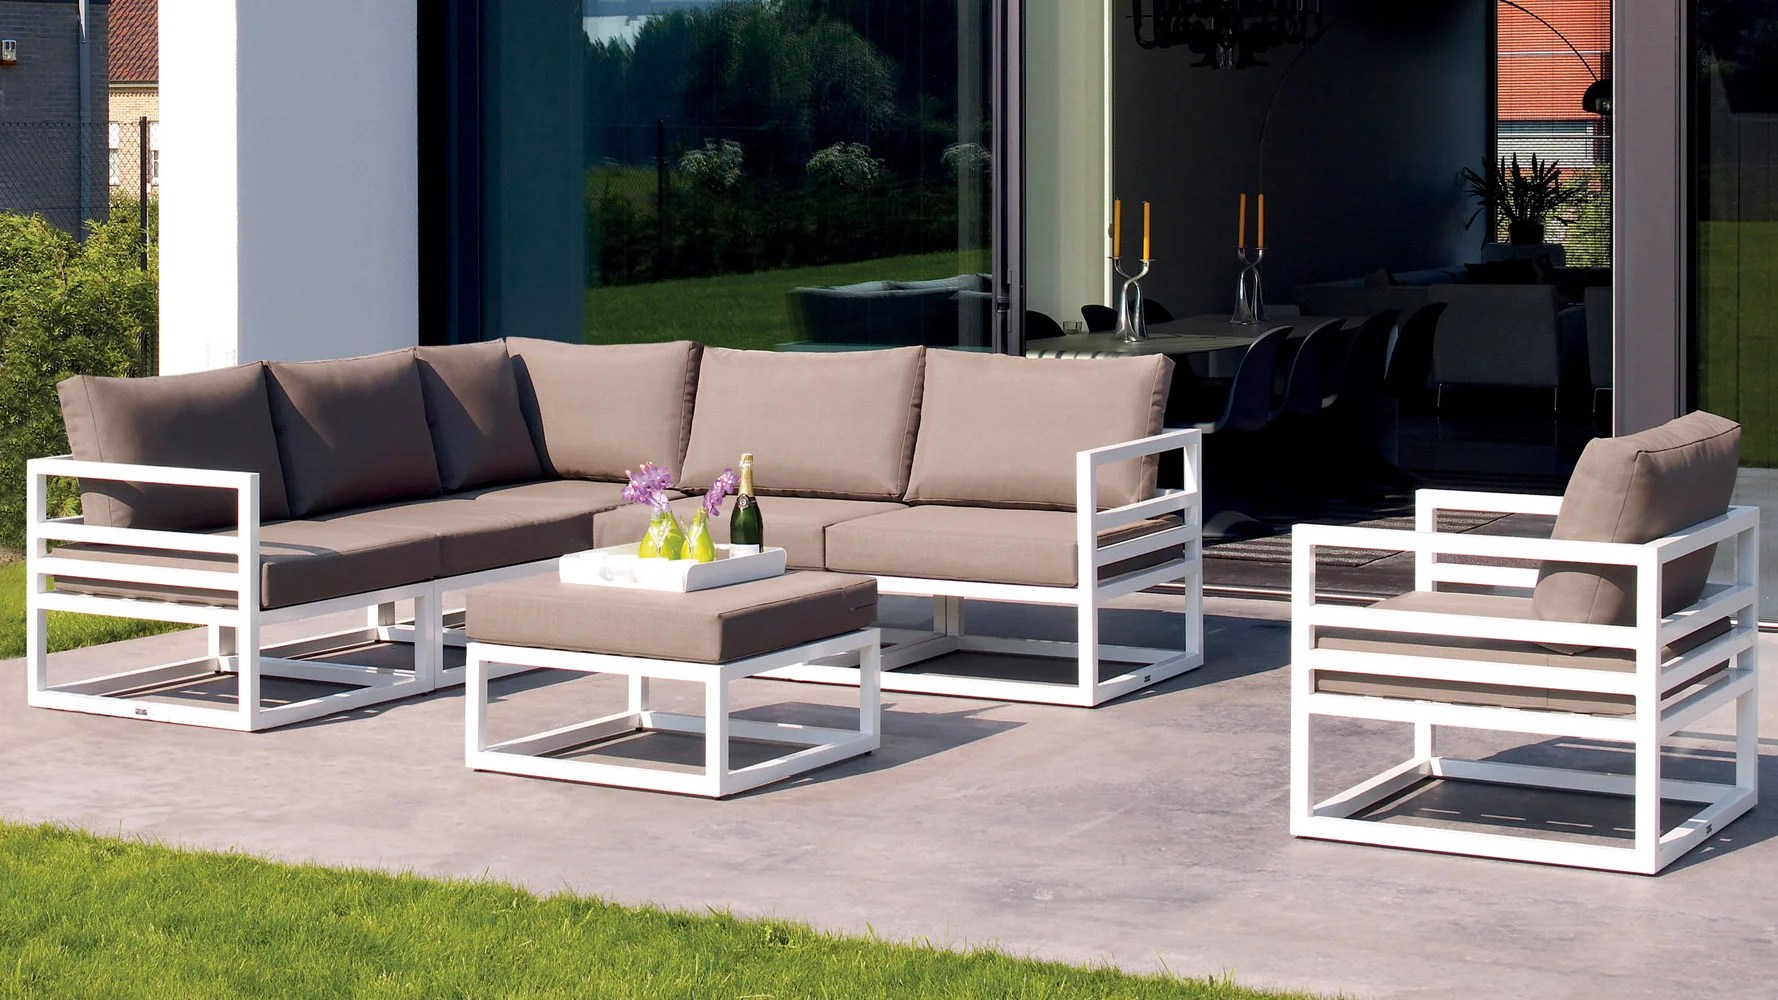 Outdoor Möbel Lounge White Aluminum Fabri Outdoor Lounge Set With Taupe